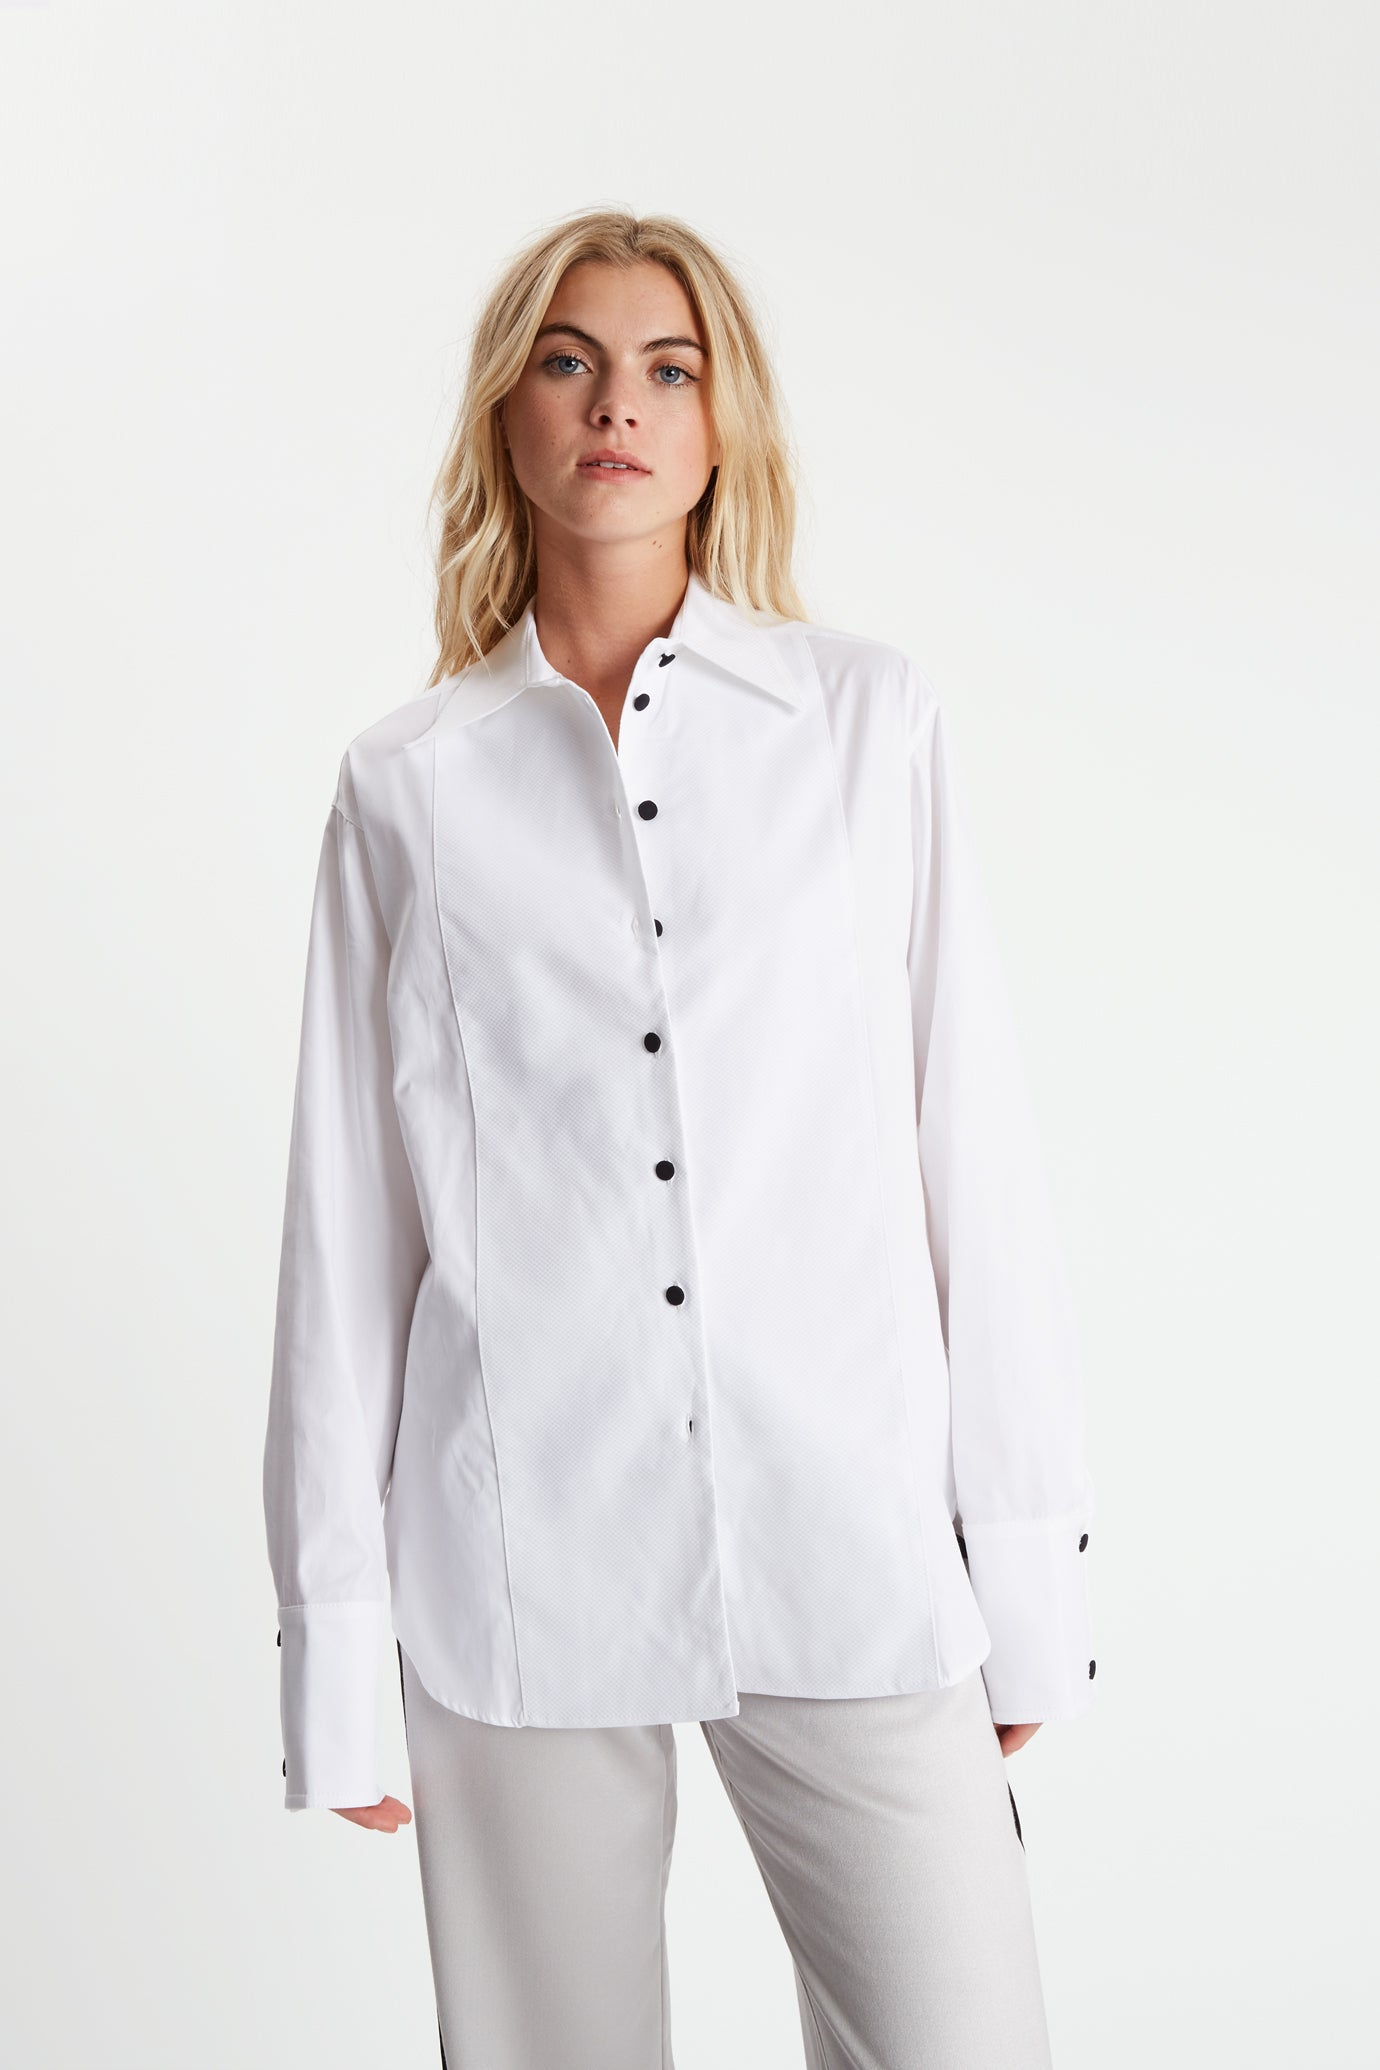 The Evening Shirt - White Cotton - SERENA BUTE